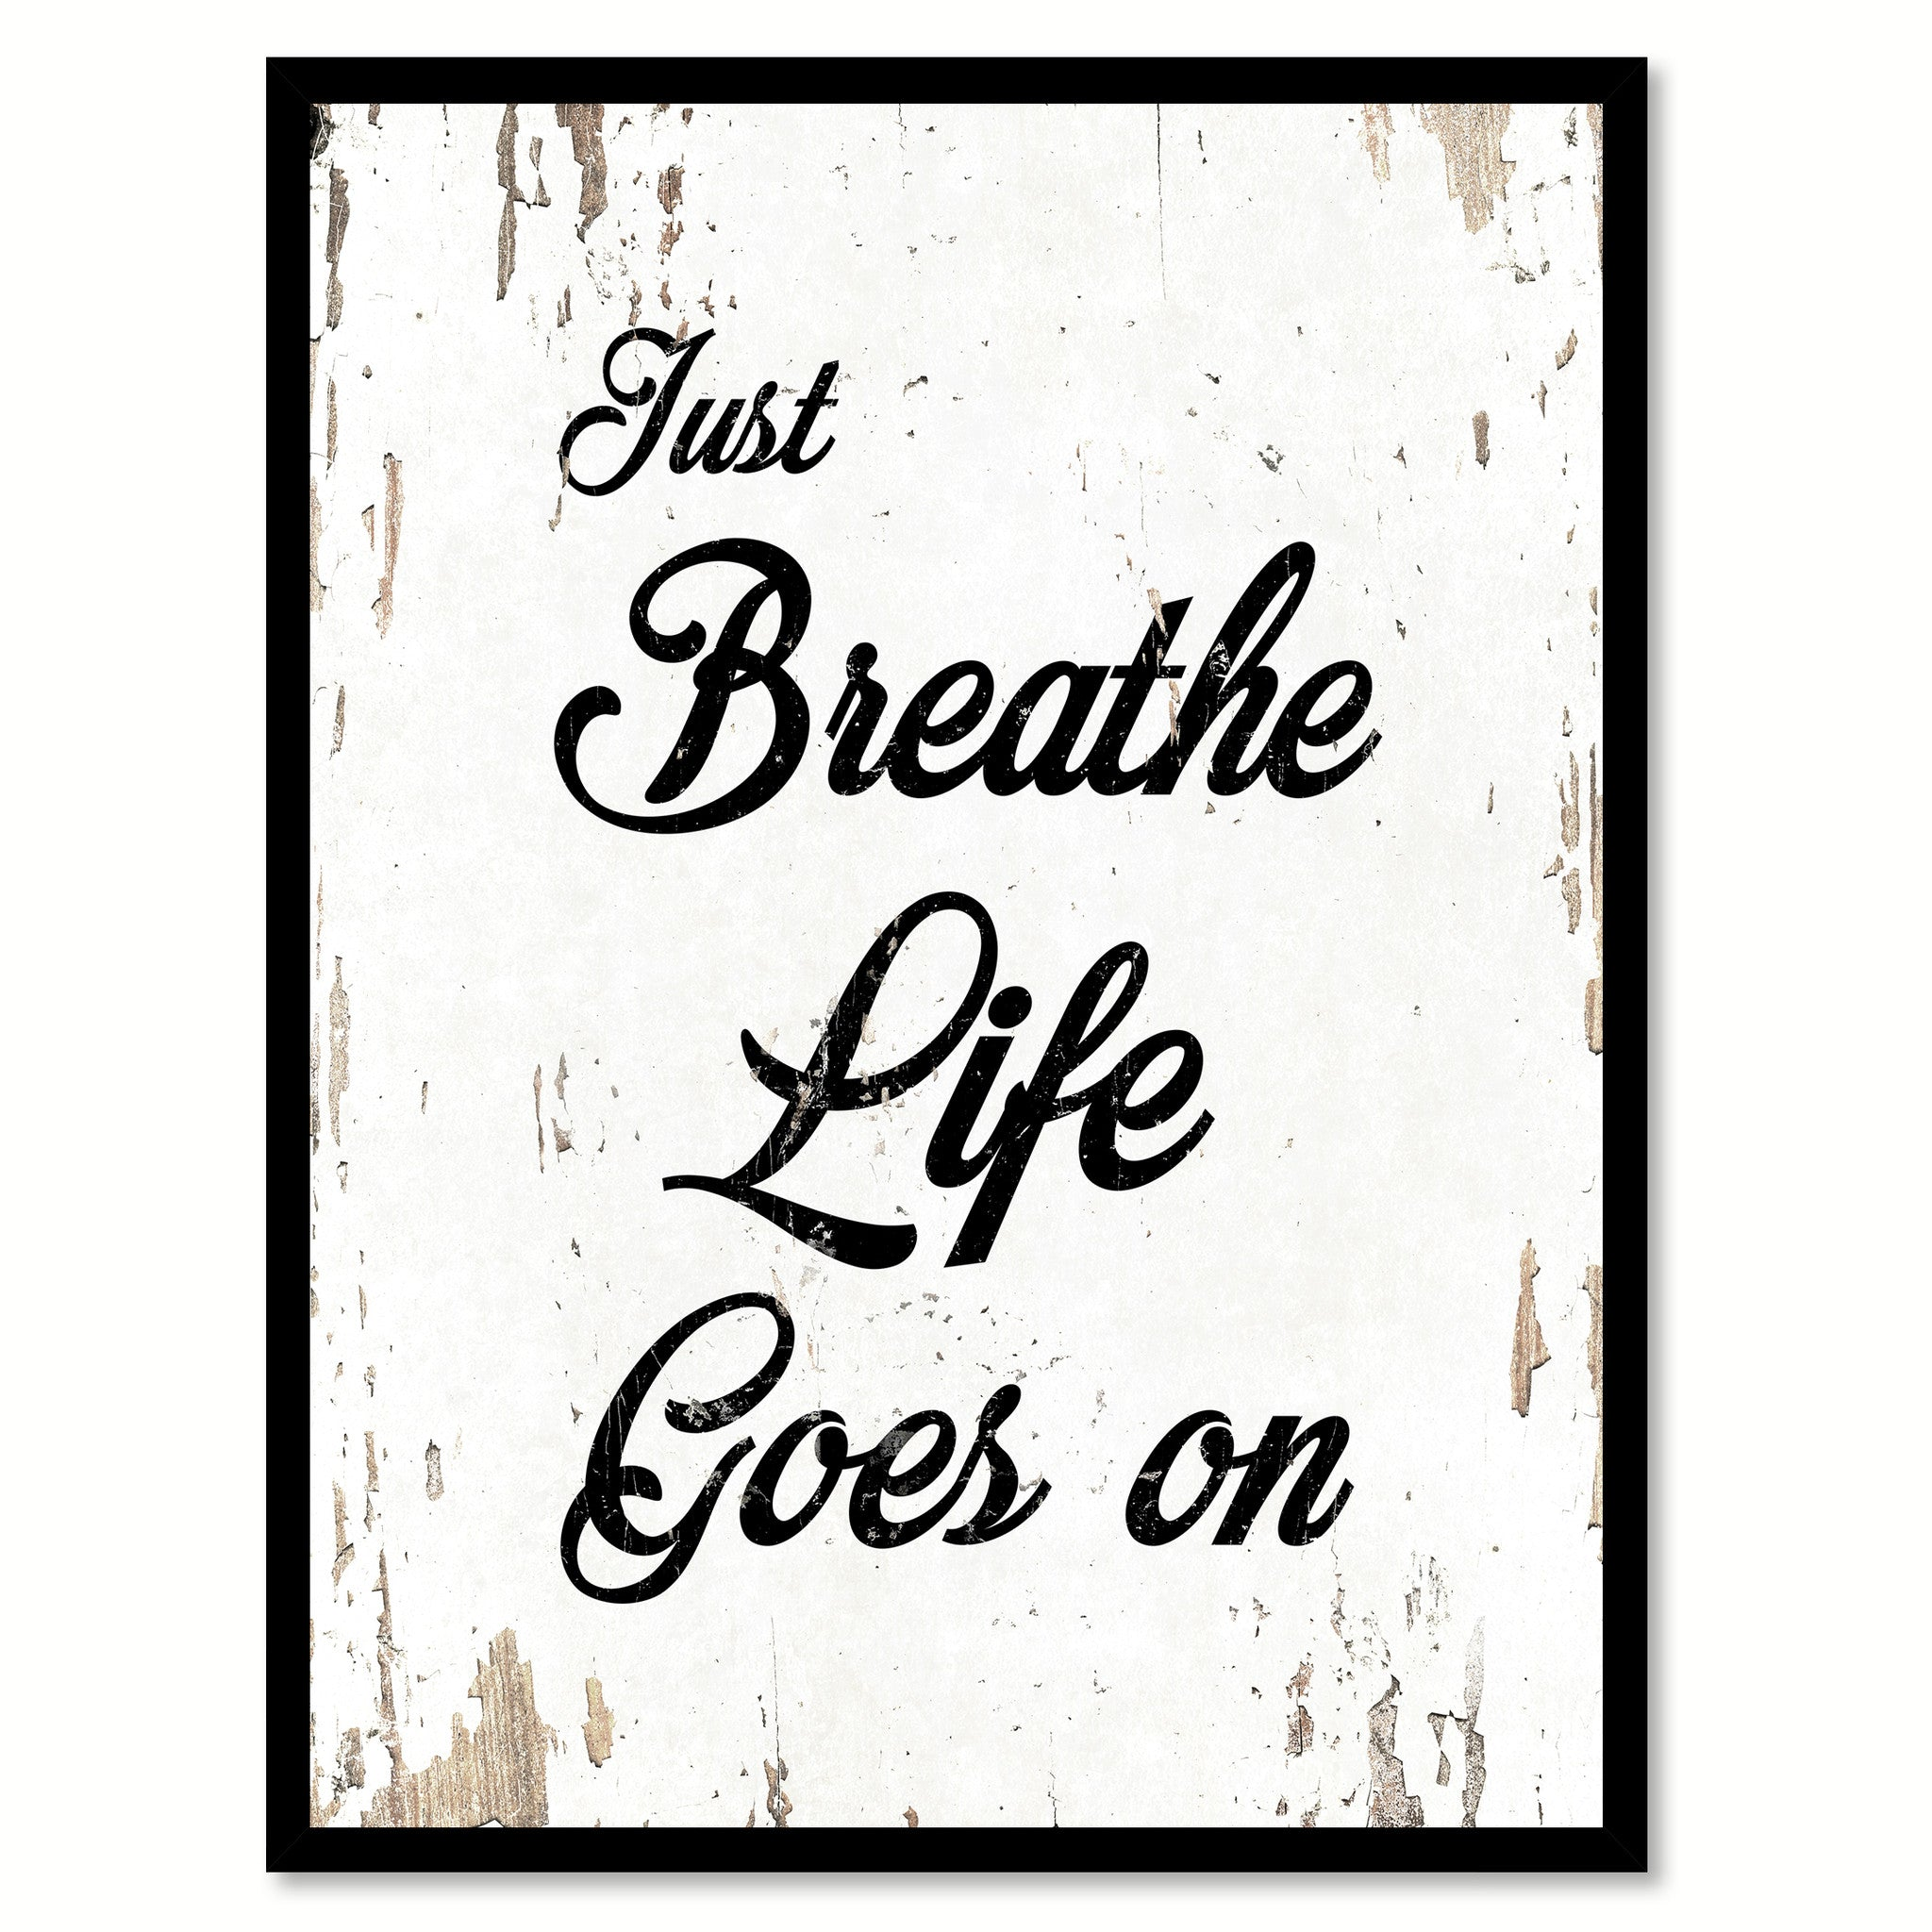 Just Breathe Life Goes On Inspirational Motivation Quote Saying